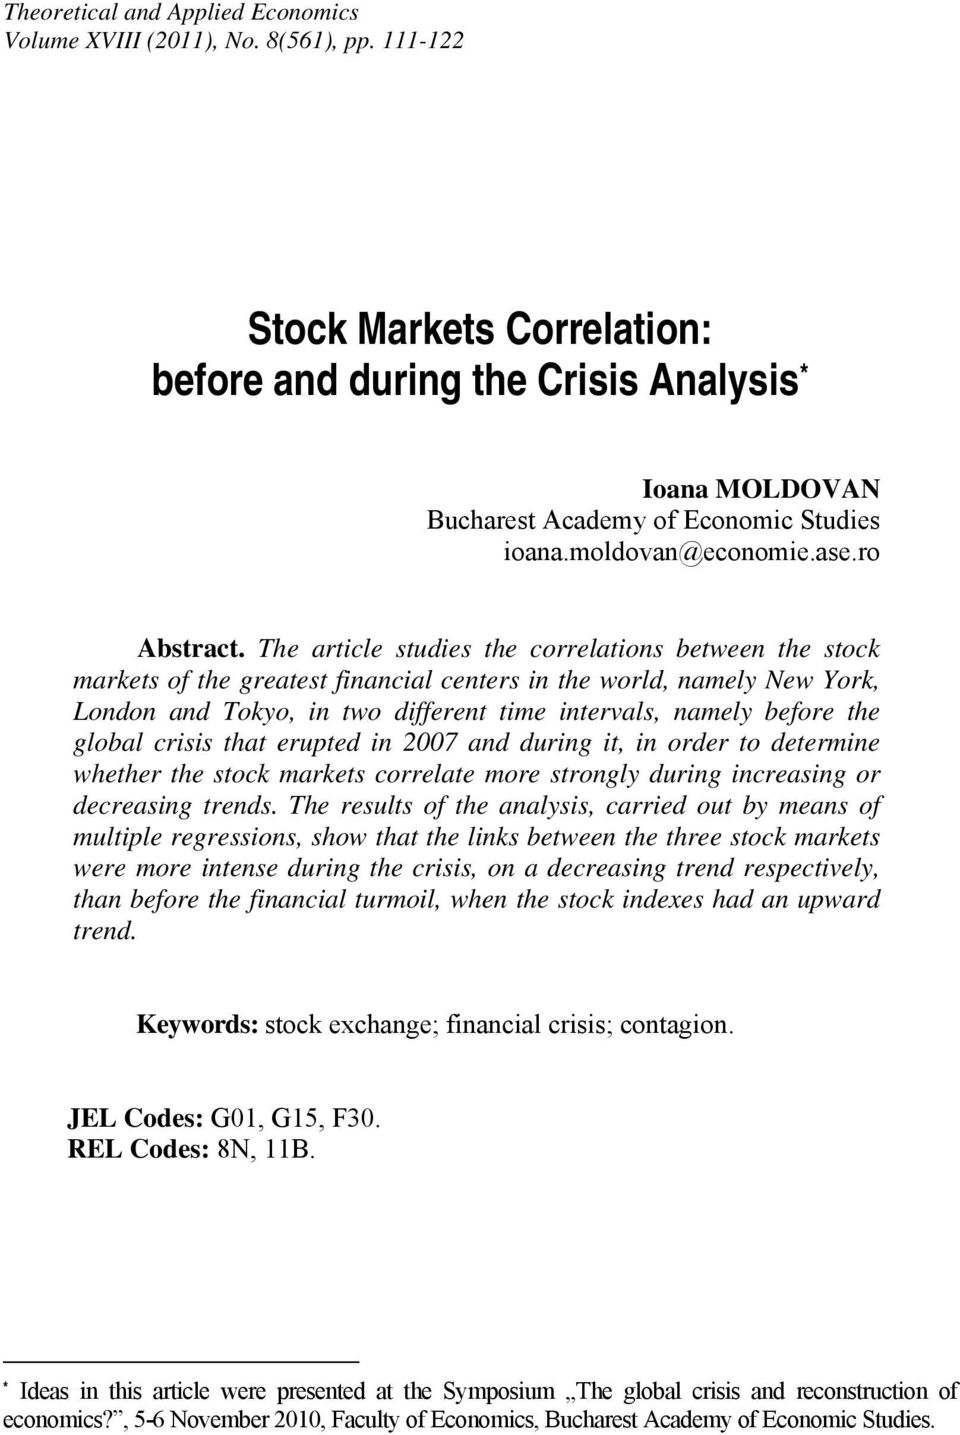 The article studies the correlations between the stock markets of the greatest financial centers in the world, namely New York, London and Tokyo, in two different time intervals, namely before the